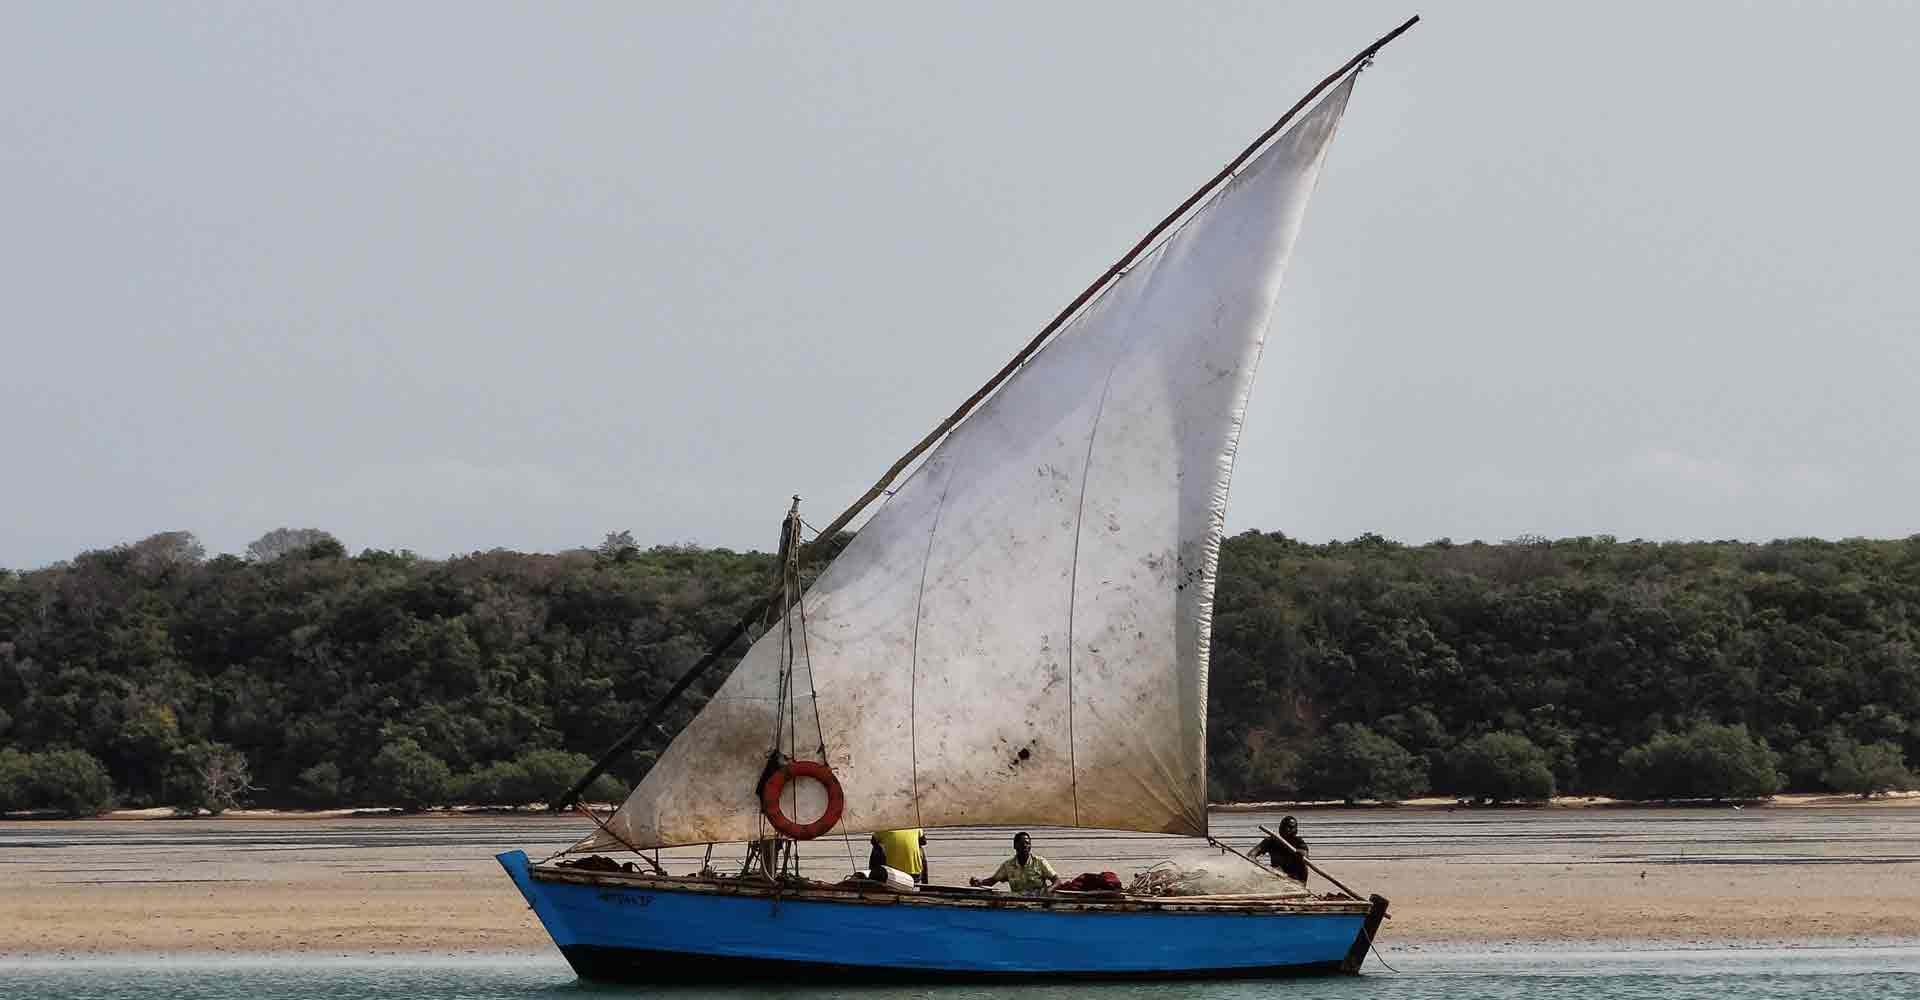 A dhow passing by during a Bech trip to Ithaca island from Maputo by Mabeco tours